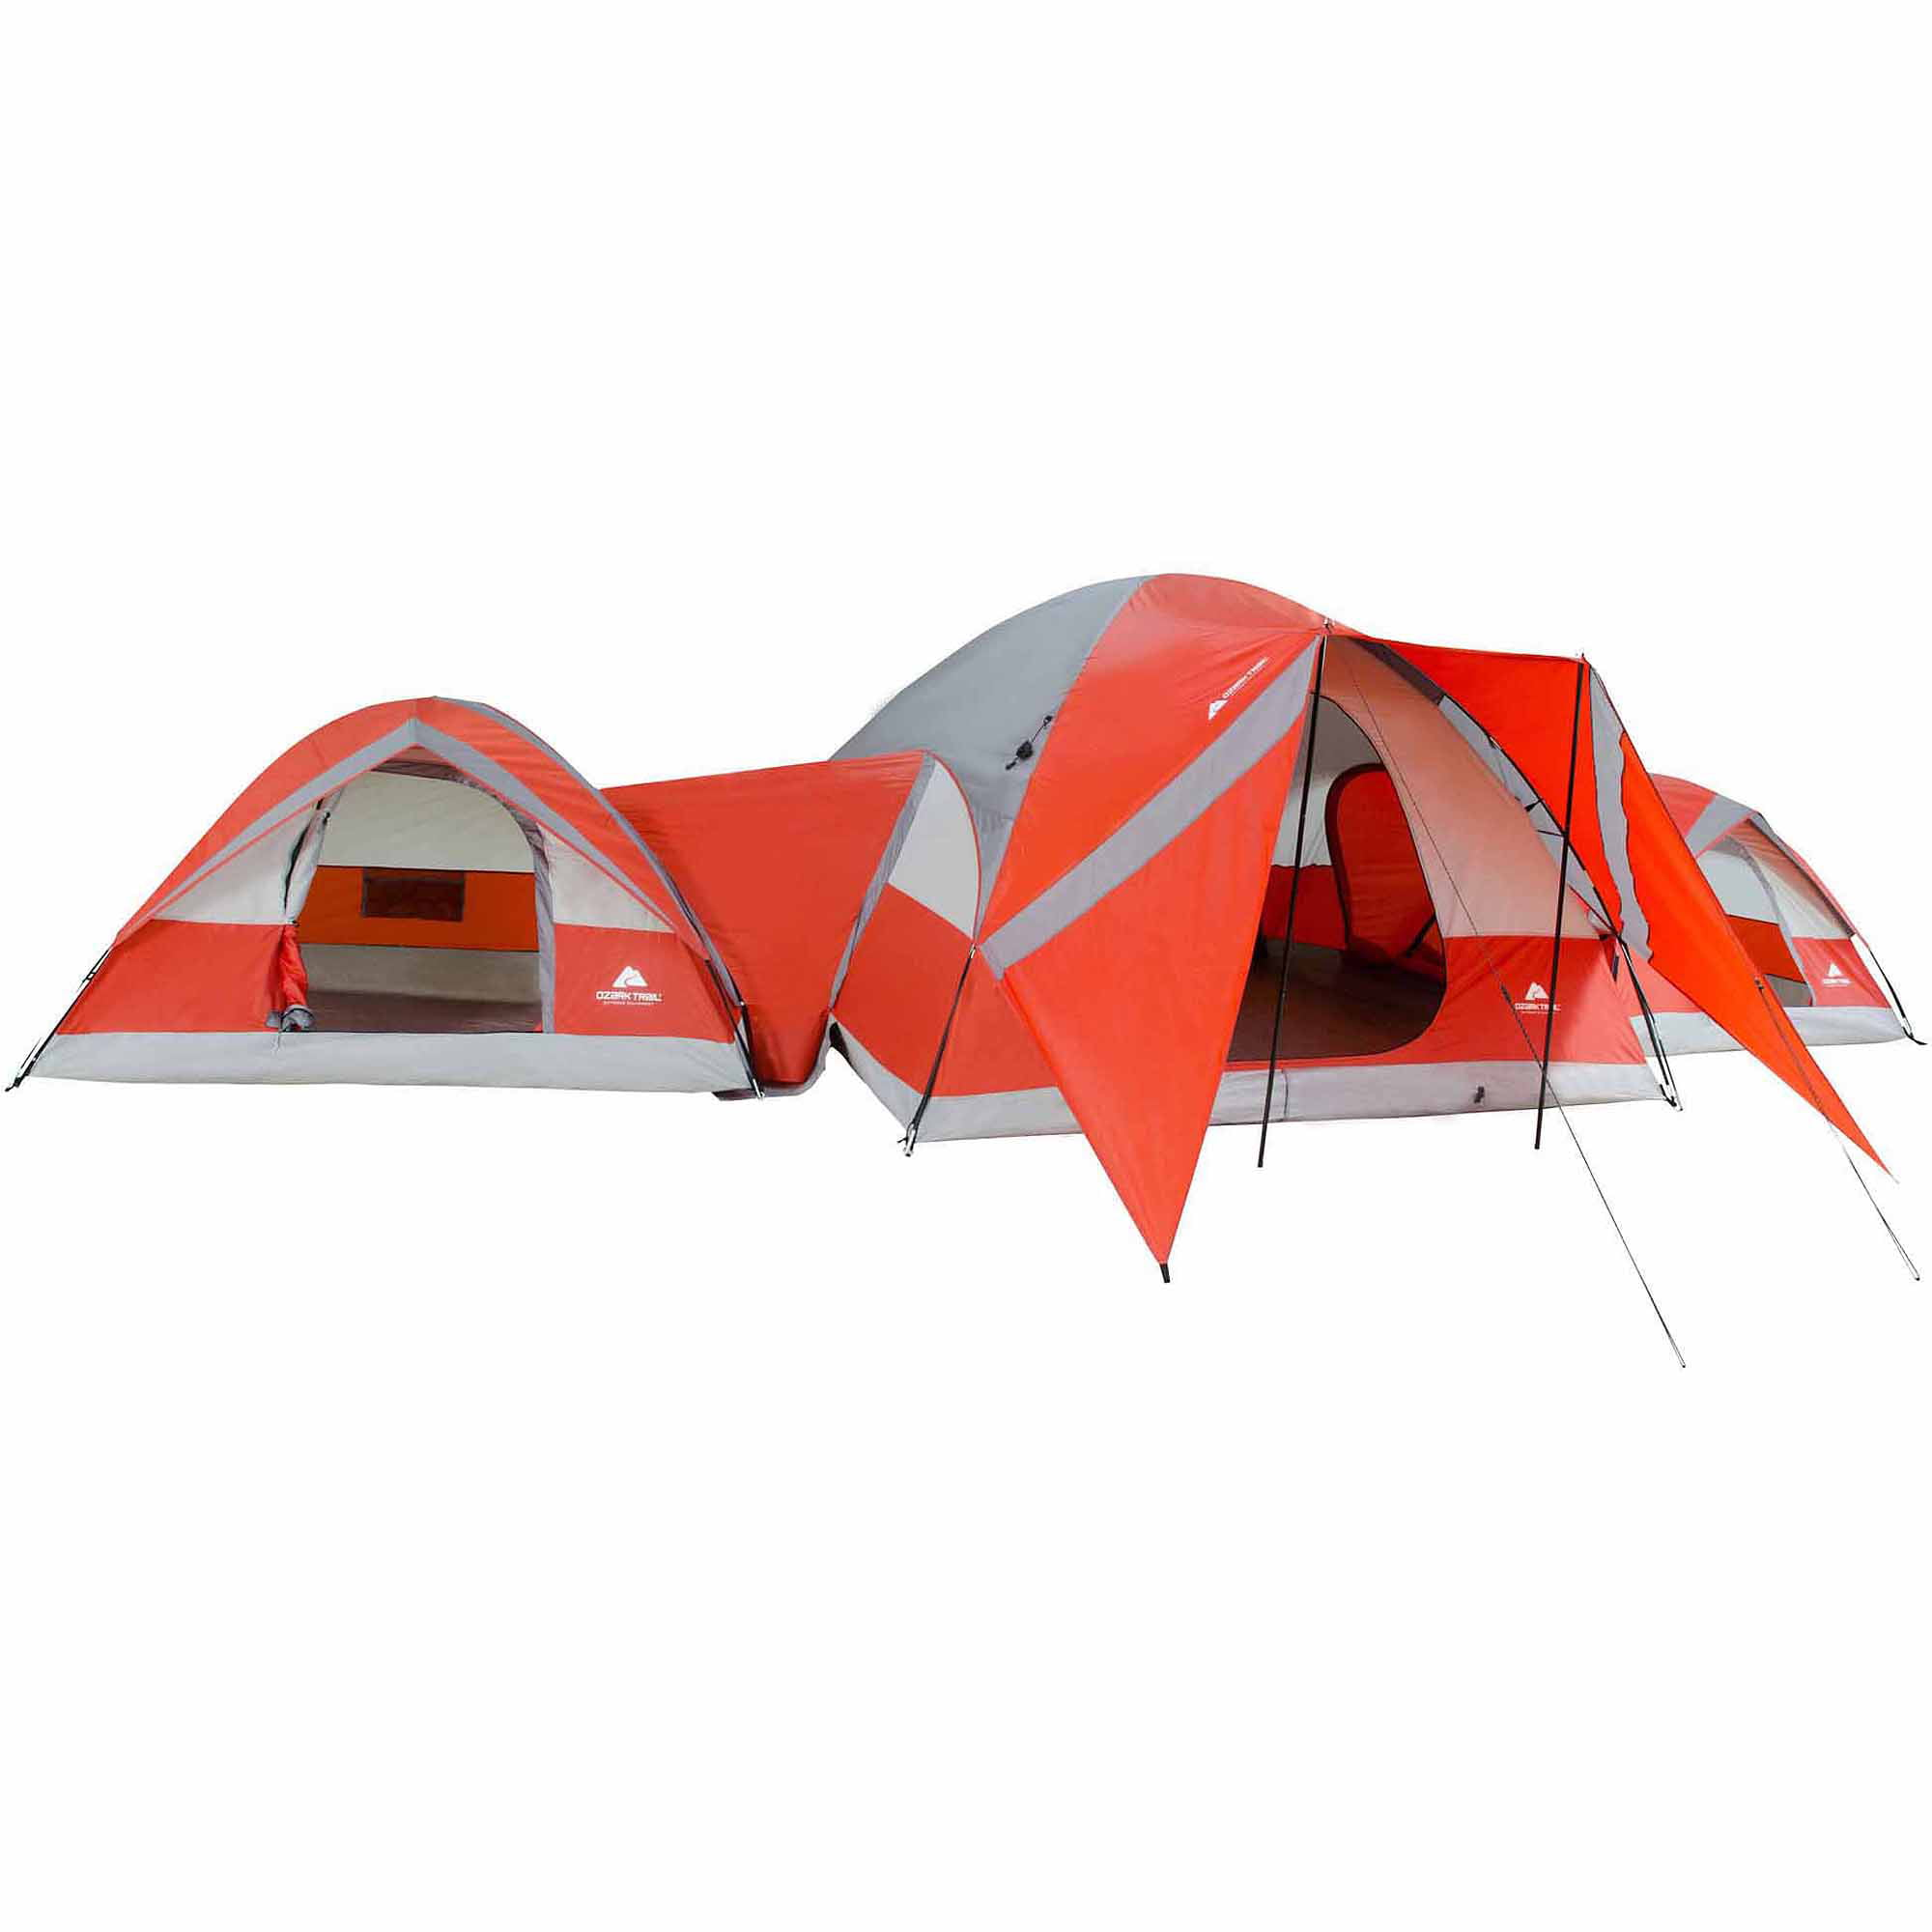 sc 1 st  Walmart & Ozark Trail ConnecTENT 10-person 3-Dome Tent - Walmart.com